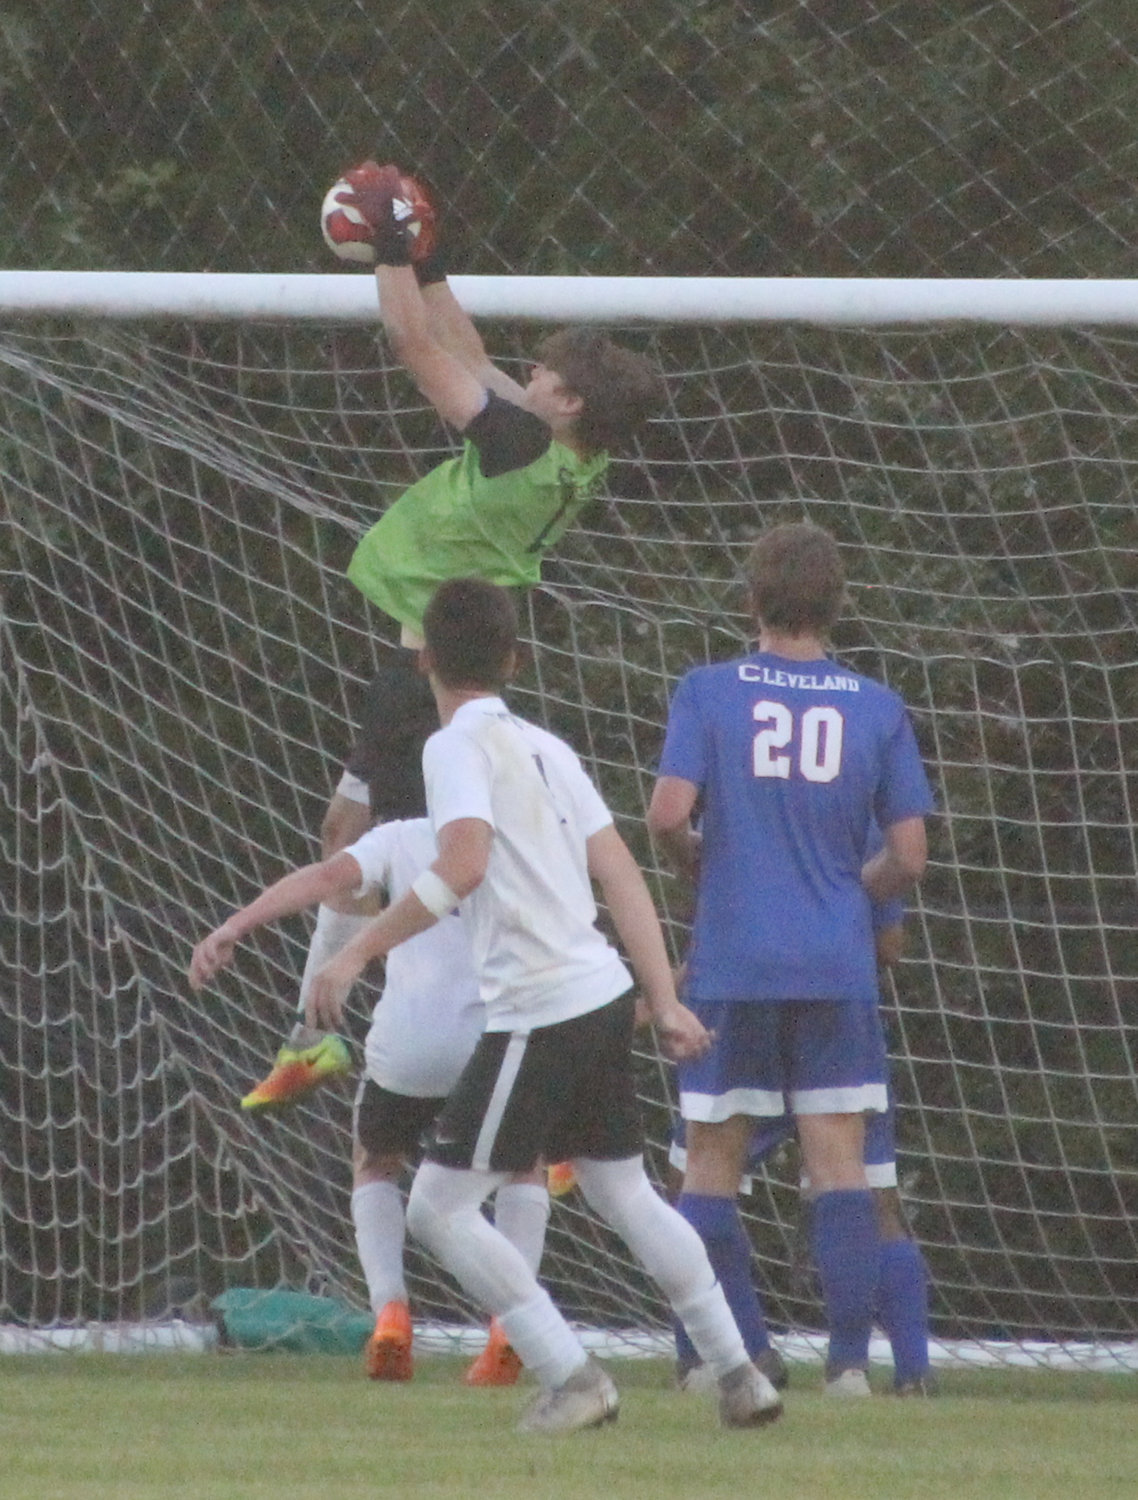 CLEVELAND HIGH junior goalkeeper Will Woodruff, center, makes one of his 12 saves in Tuesday evening's 2-0 shutout of Rhea County in the Region 3-AAA semifinal match at the Great Cleveland Soccer Complex.